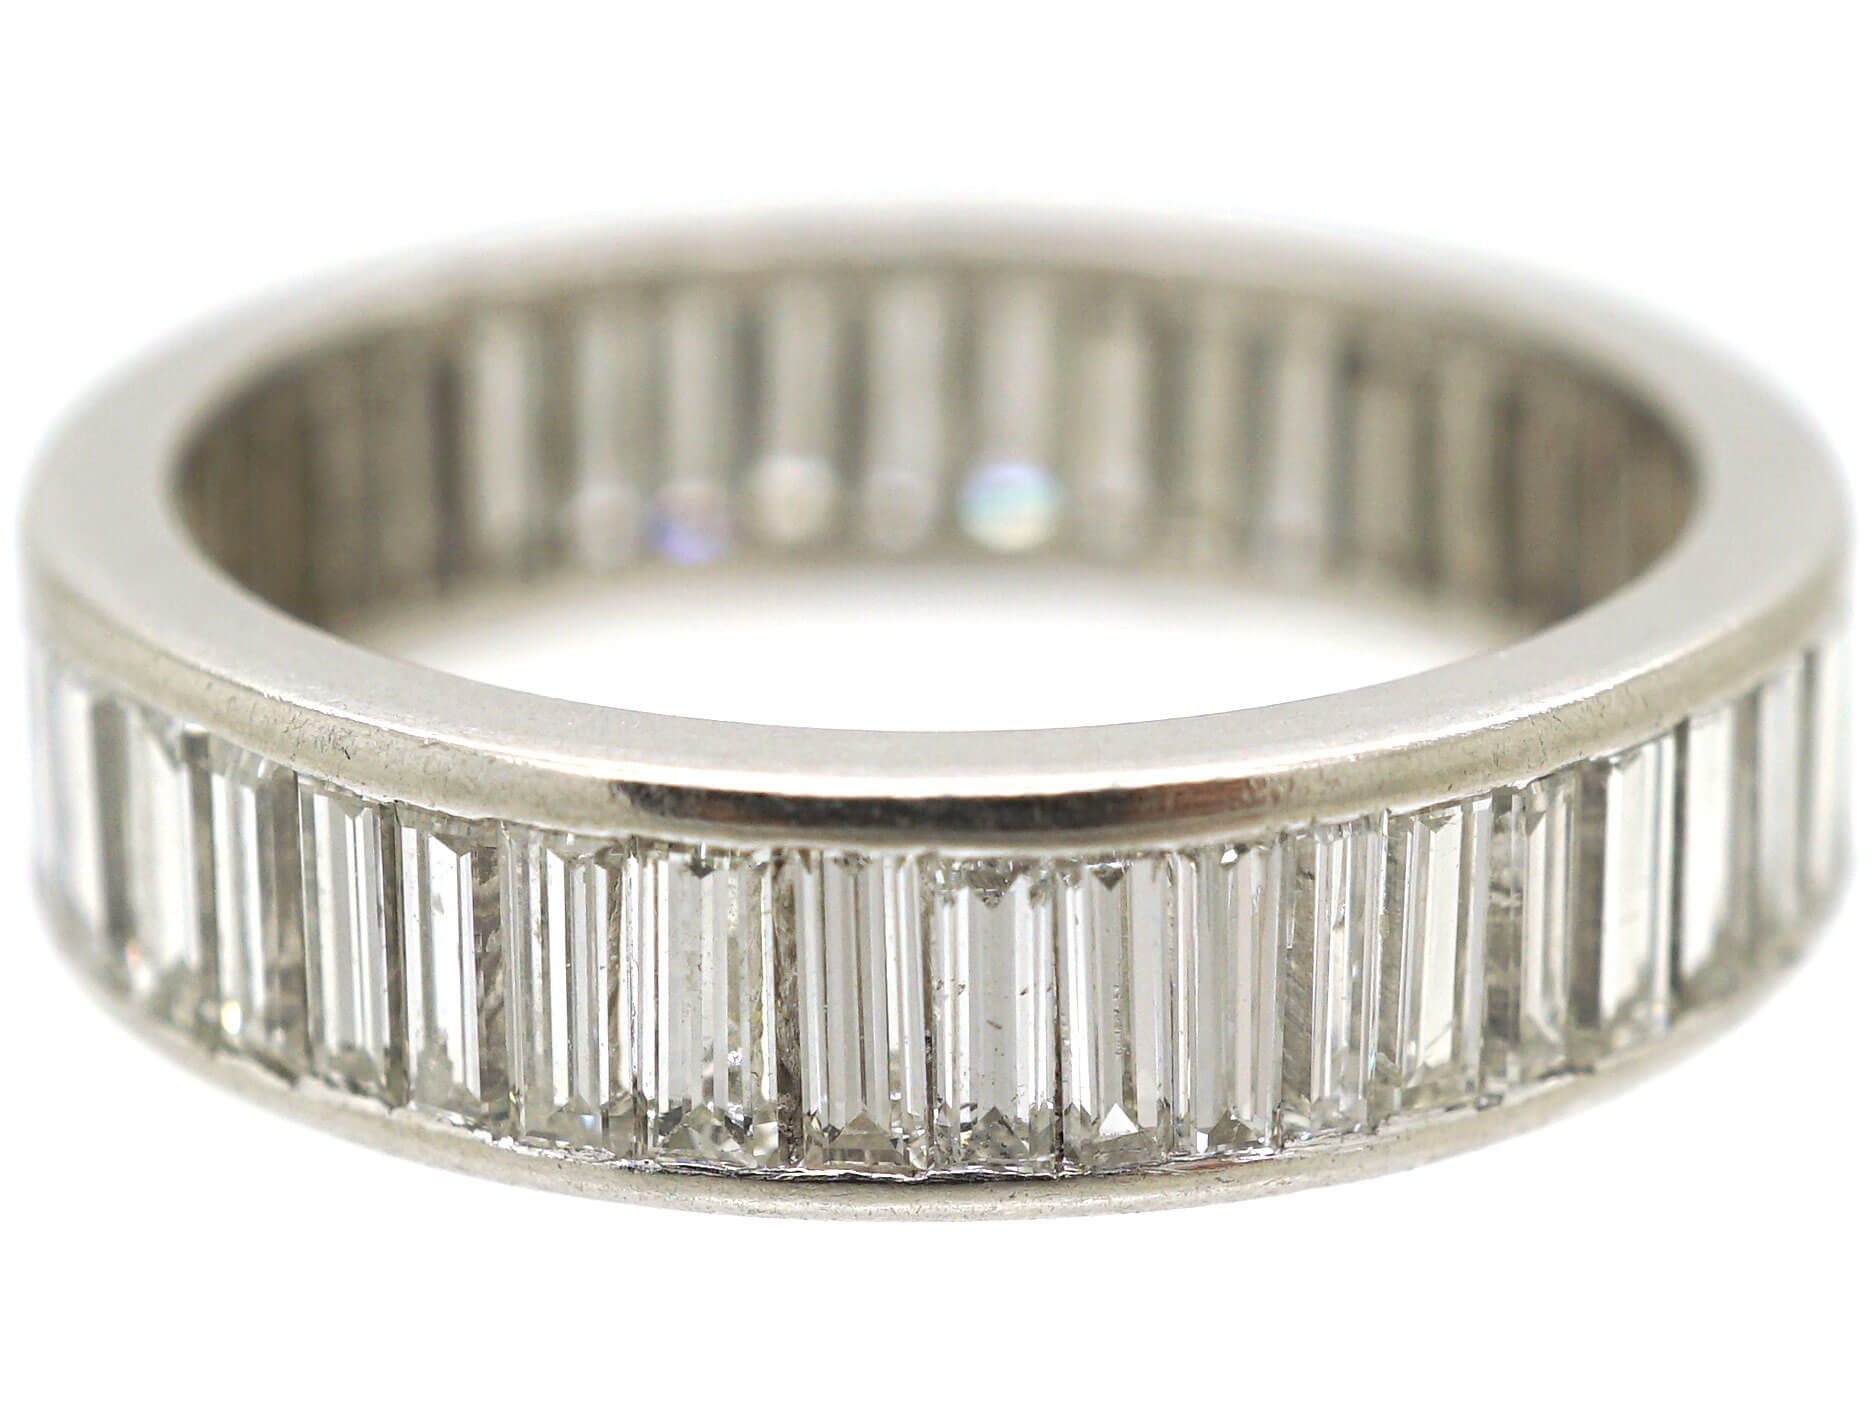 18ct White Gold Wide Baguette Diamond Eternity Ring